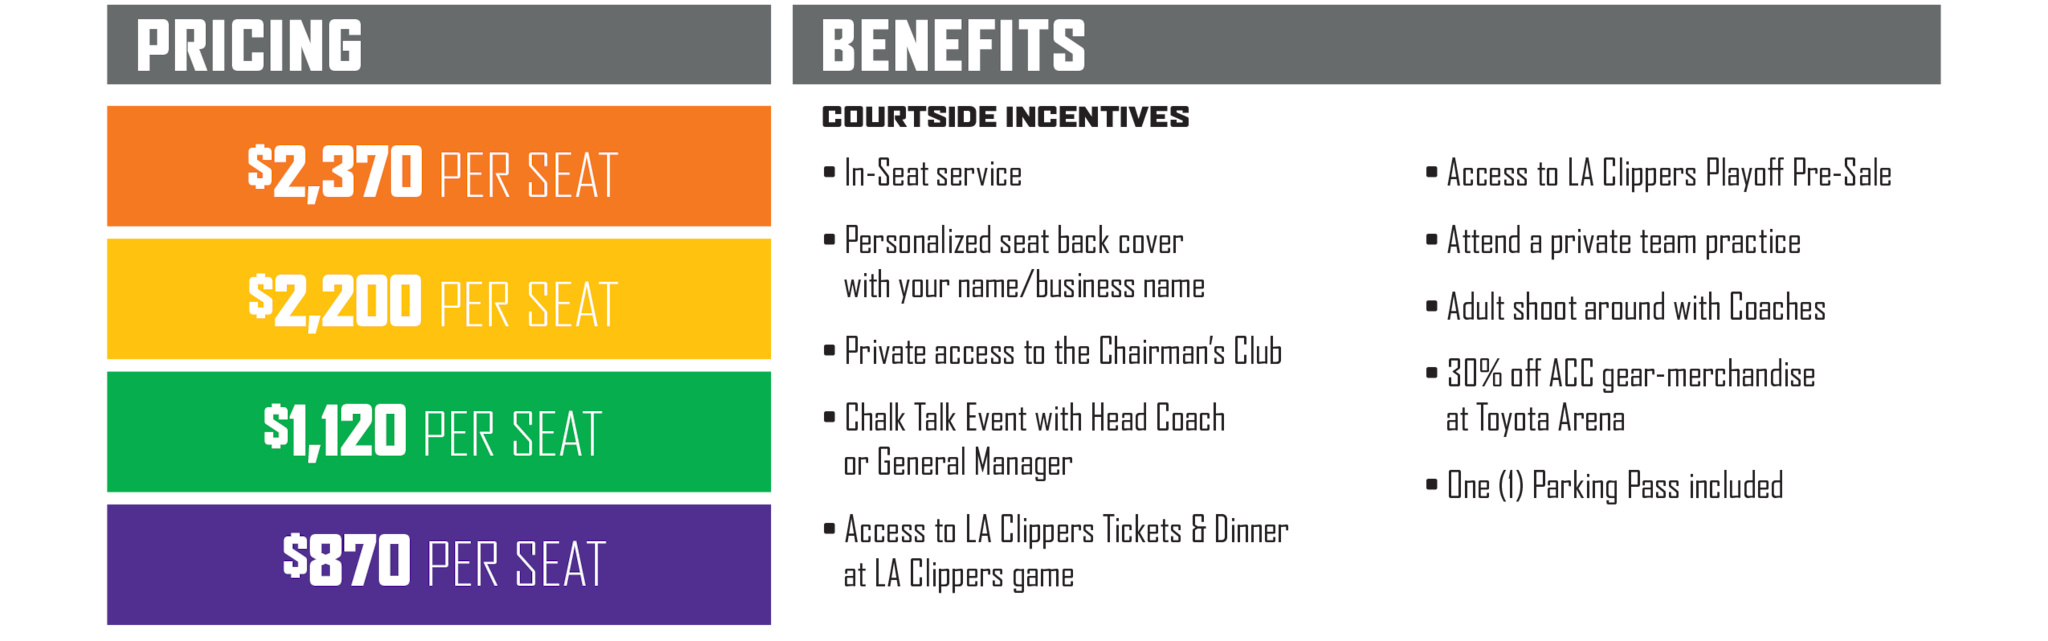 PRICING and BENEFITS